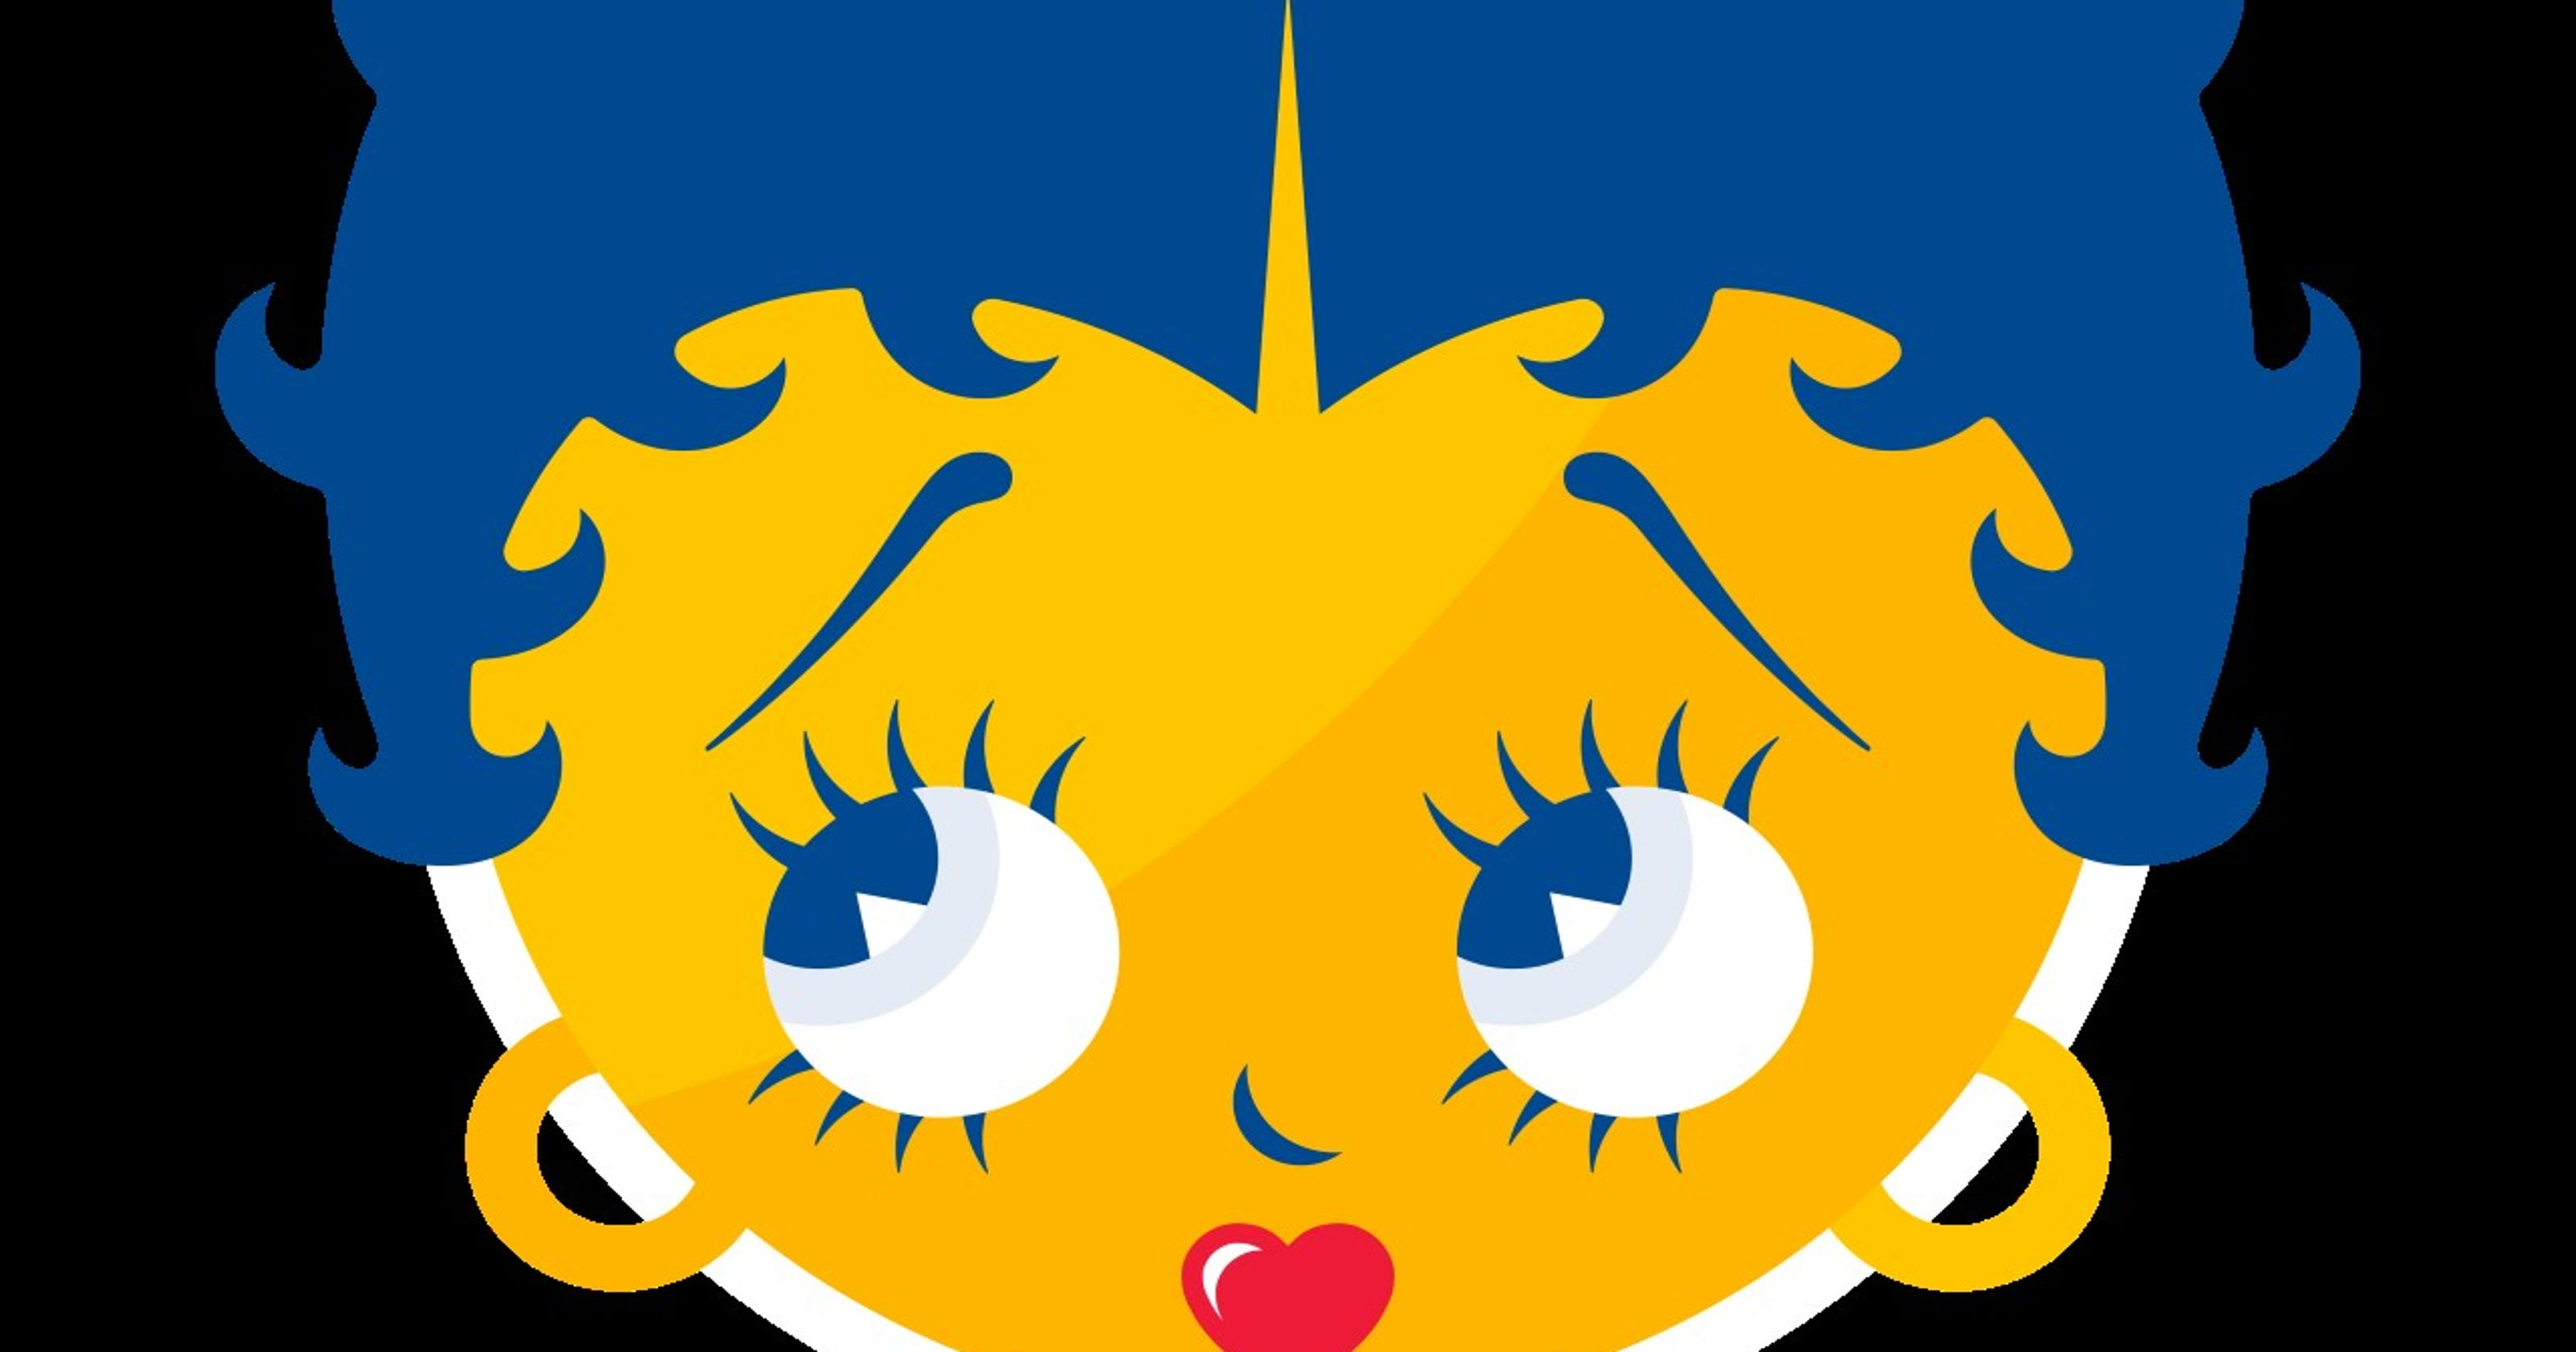 Exclusive: Betty Boop gets her first emoji in time for World Emoji Day